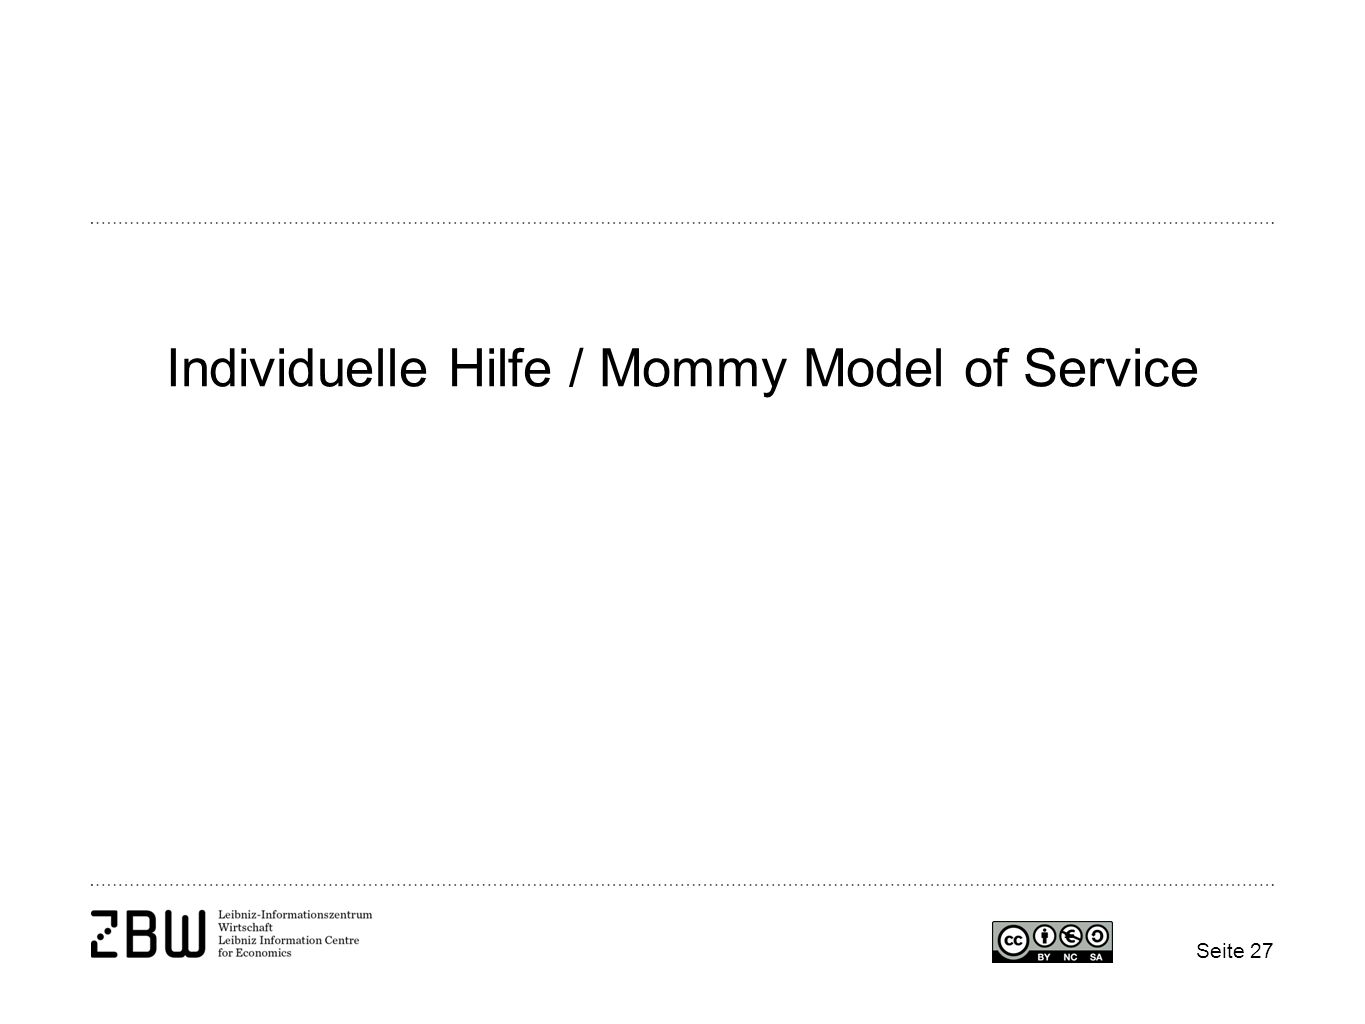 Individuelle Hilfe / Mommy Model of Service